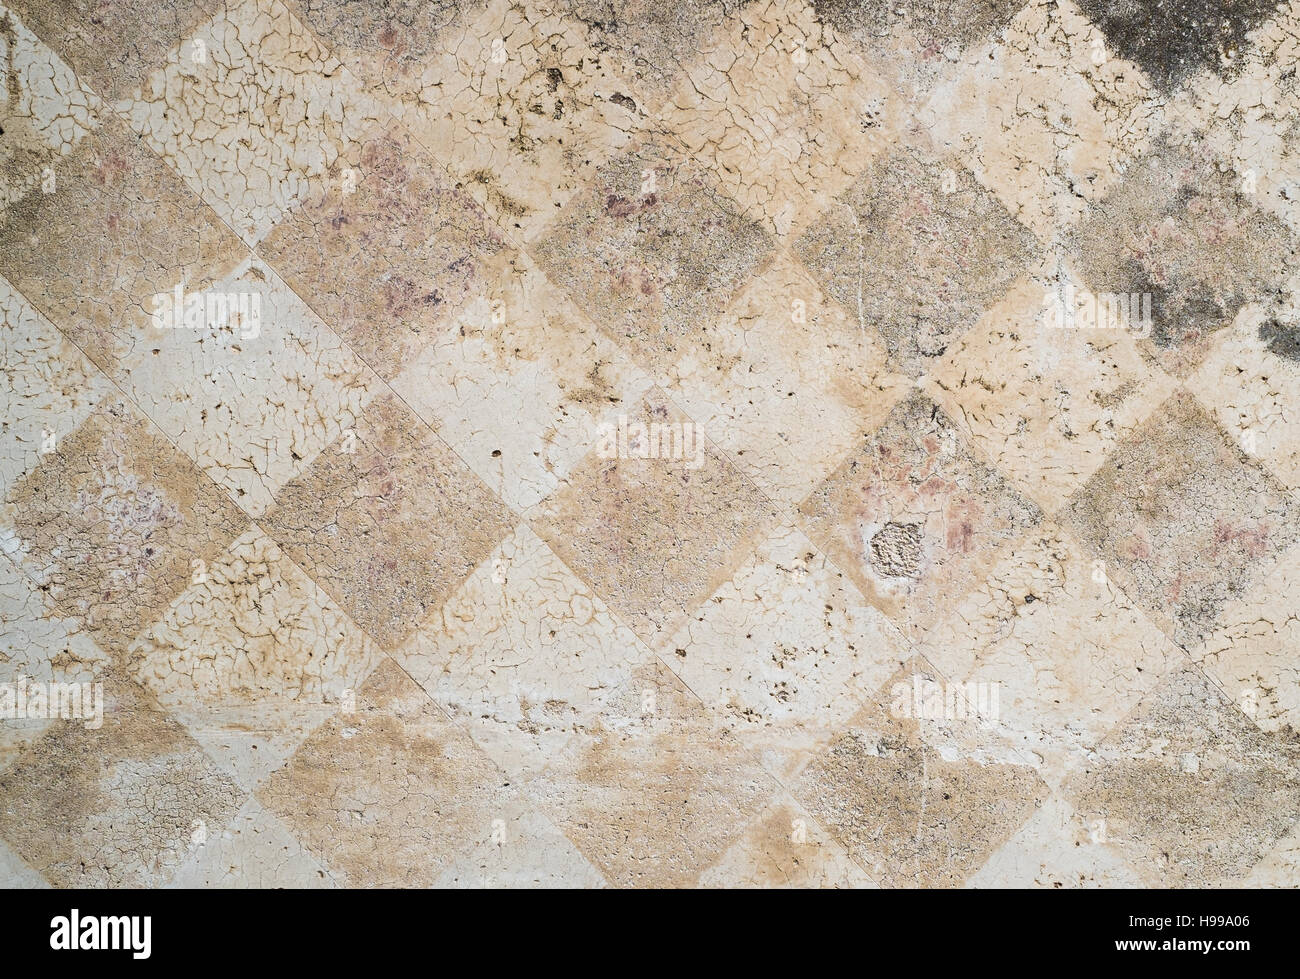 Distressed external wall diamonds decoration - Stock Image